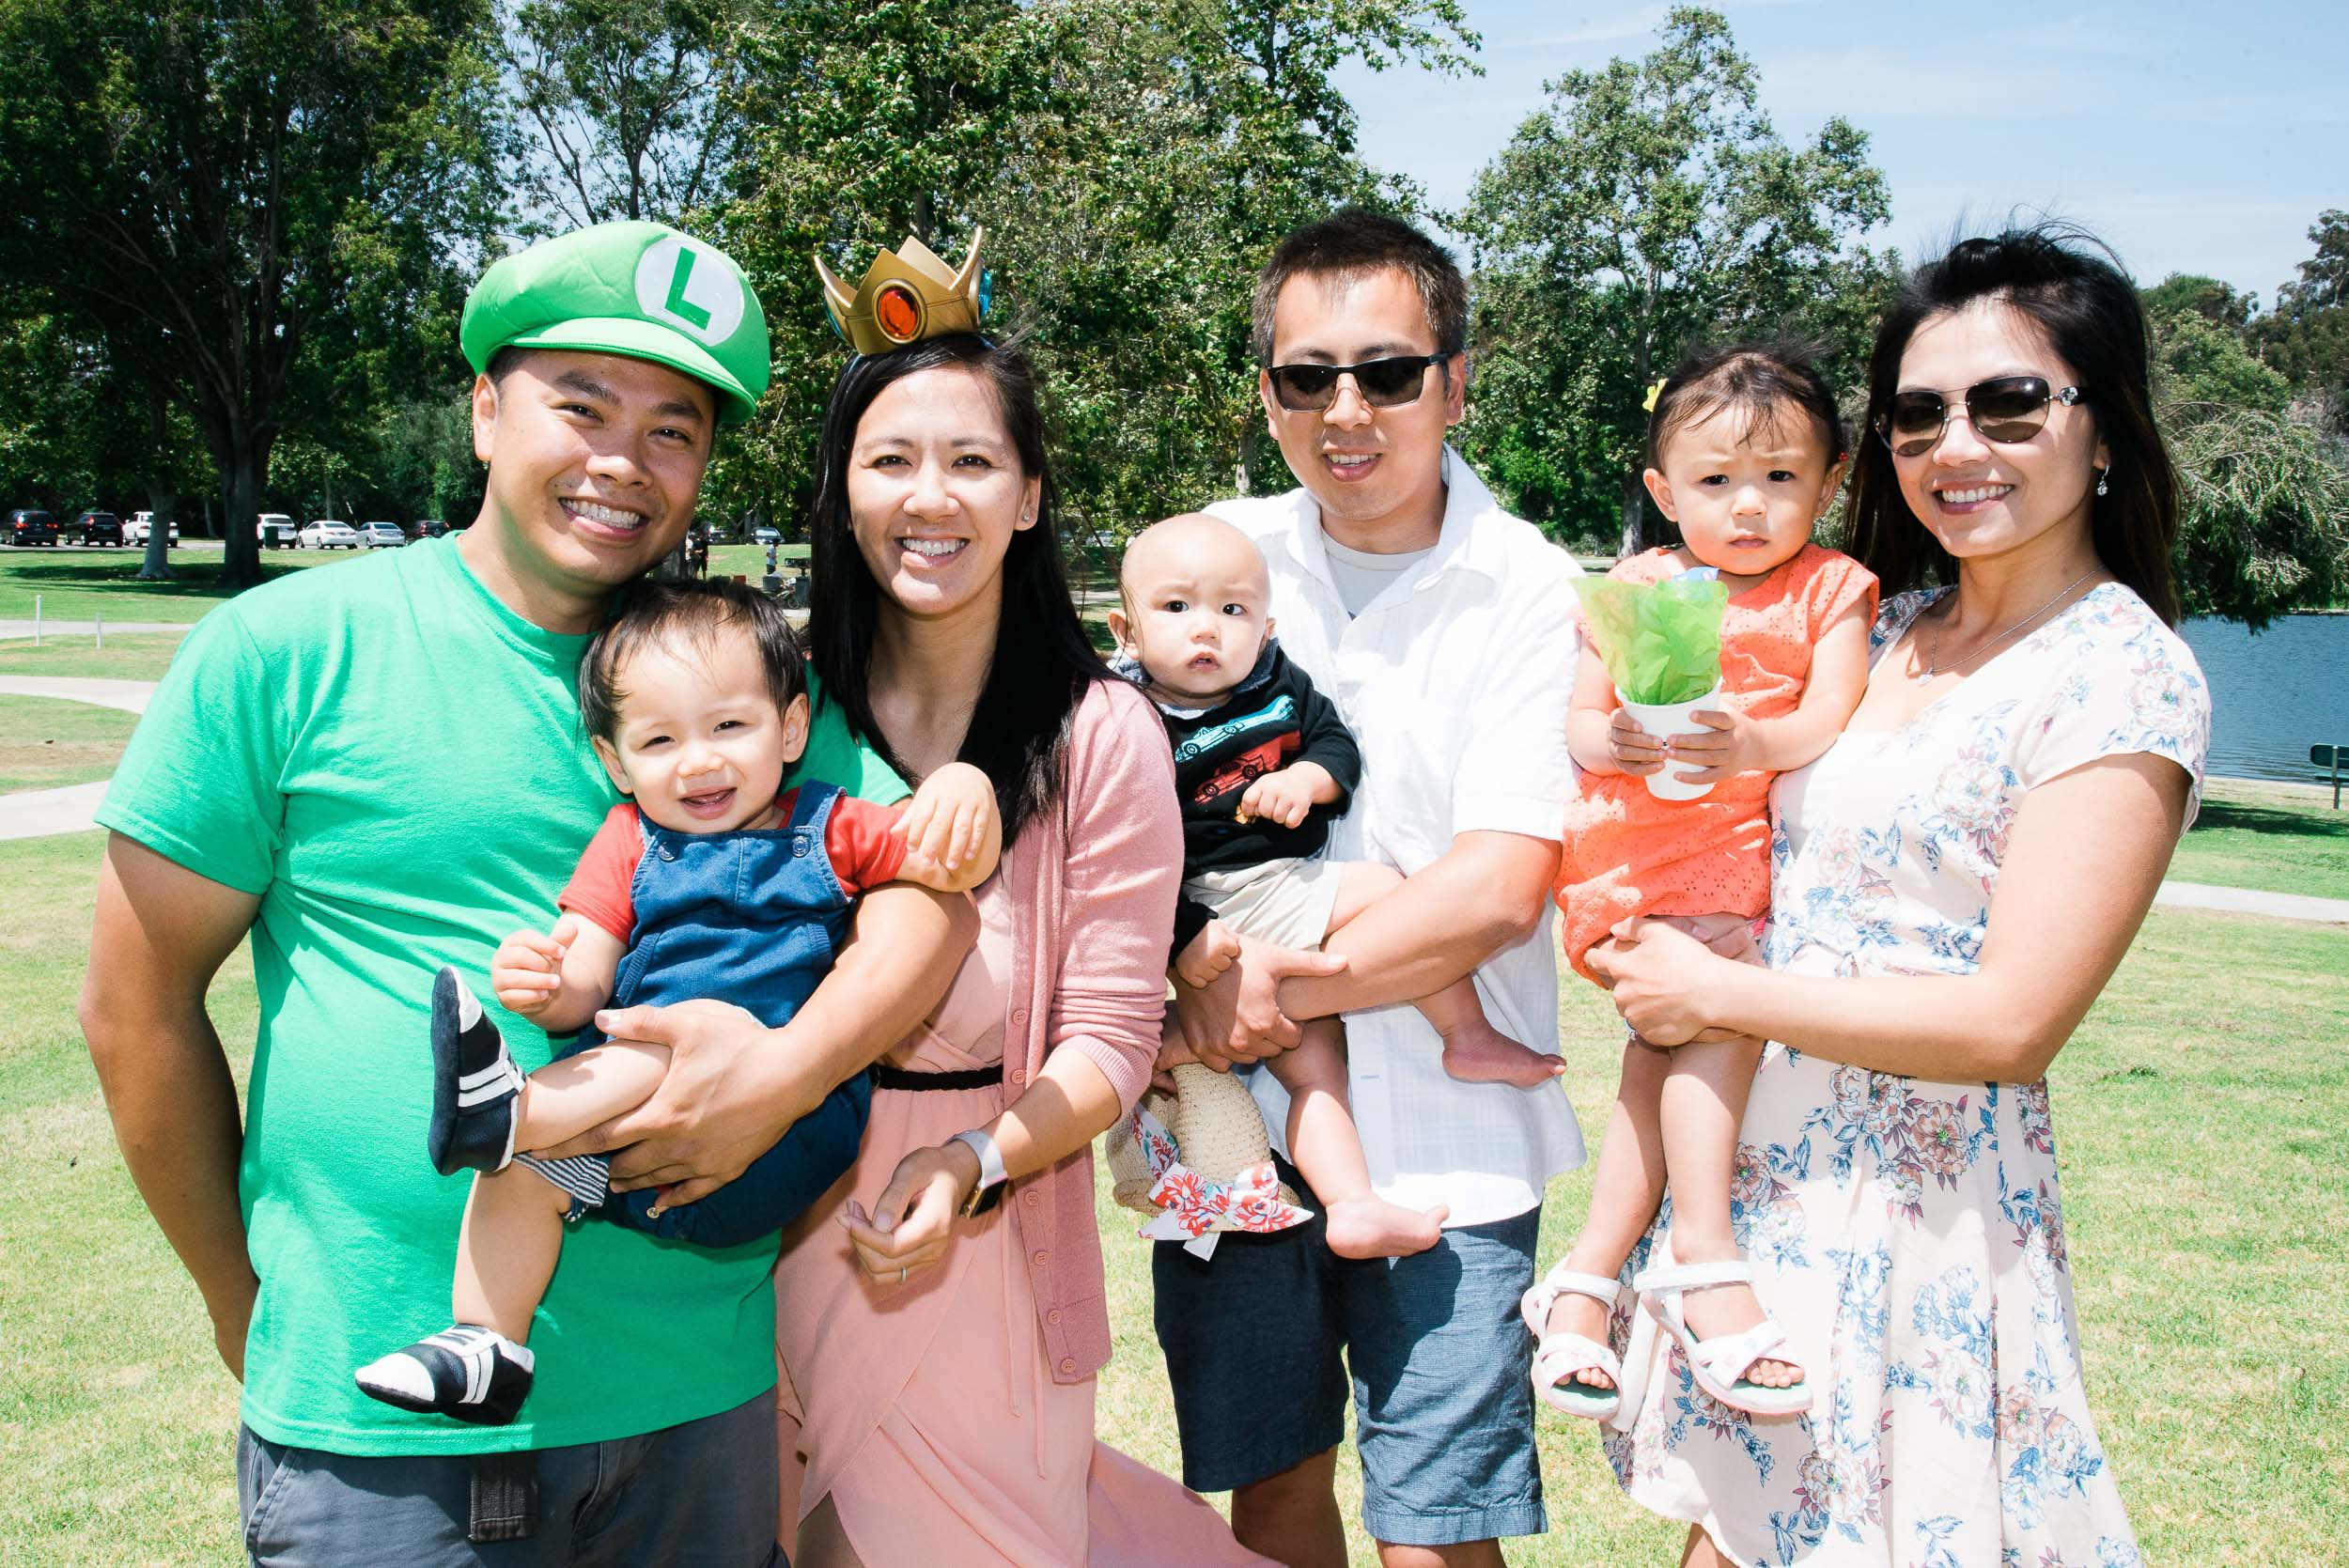 Bryan-Miraflor-Photography-Davin-First-Birthday-Irvine-20170603-0517.jpg